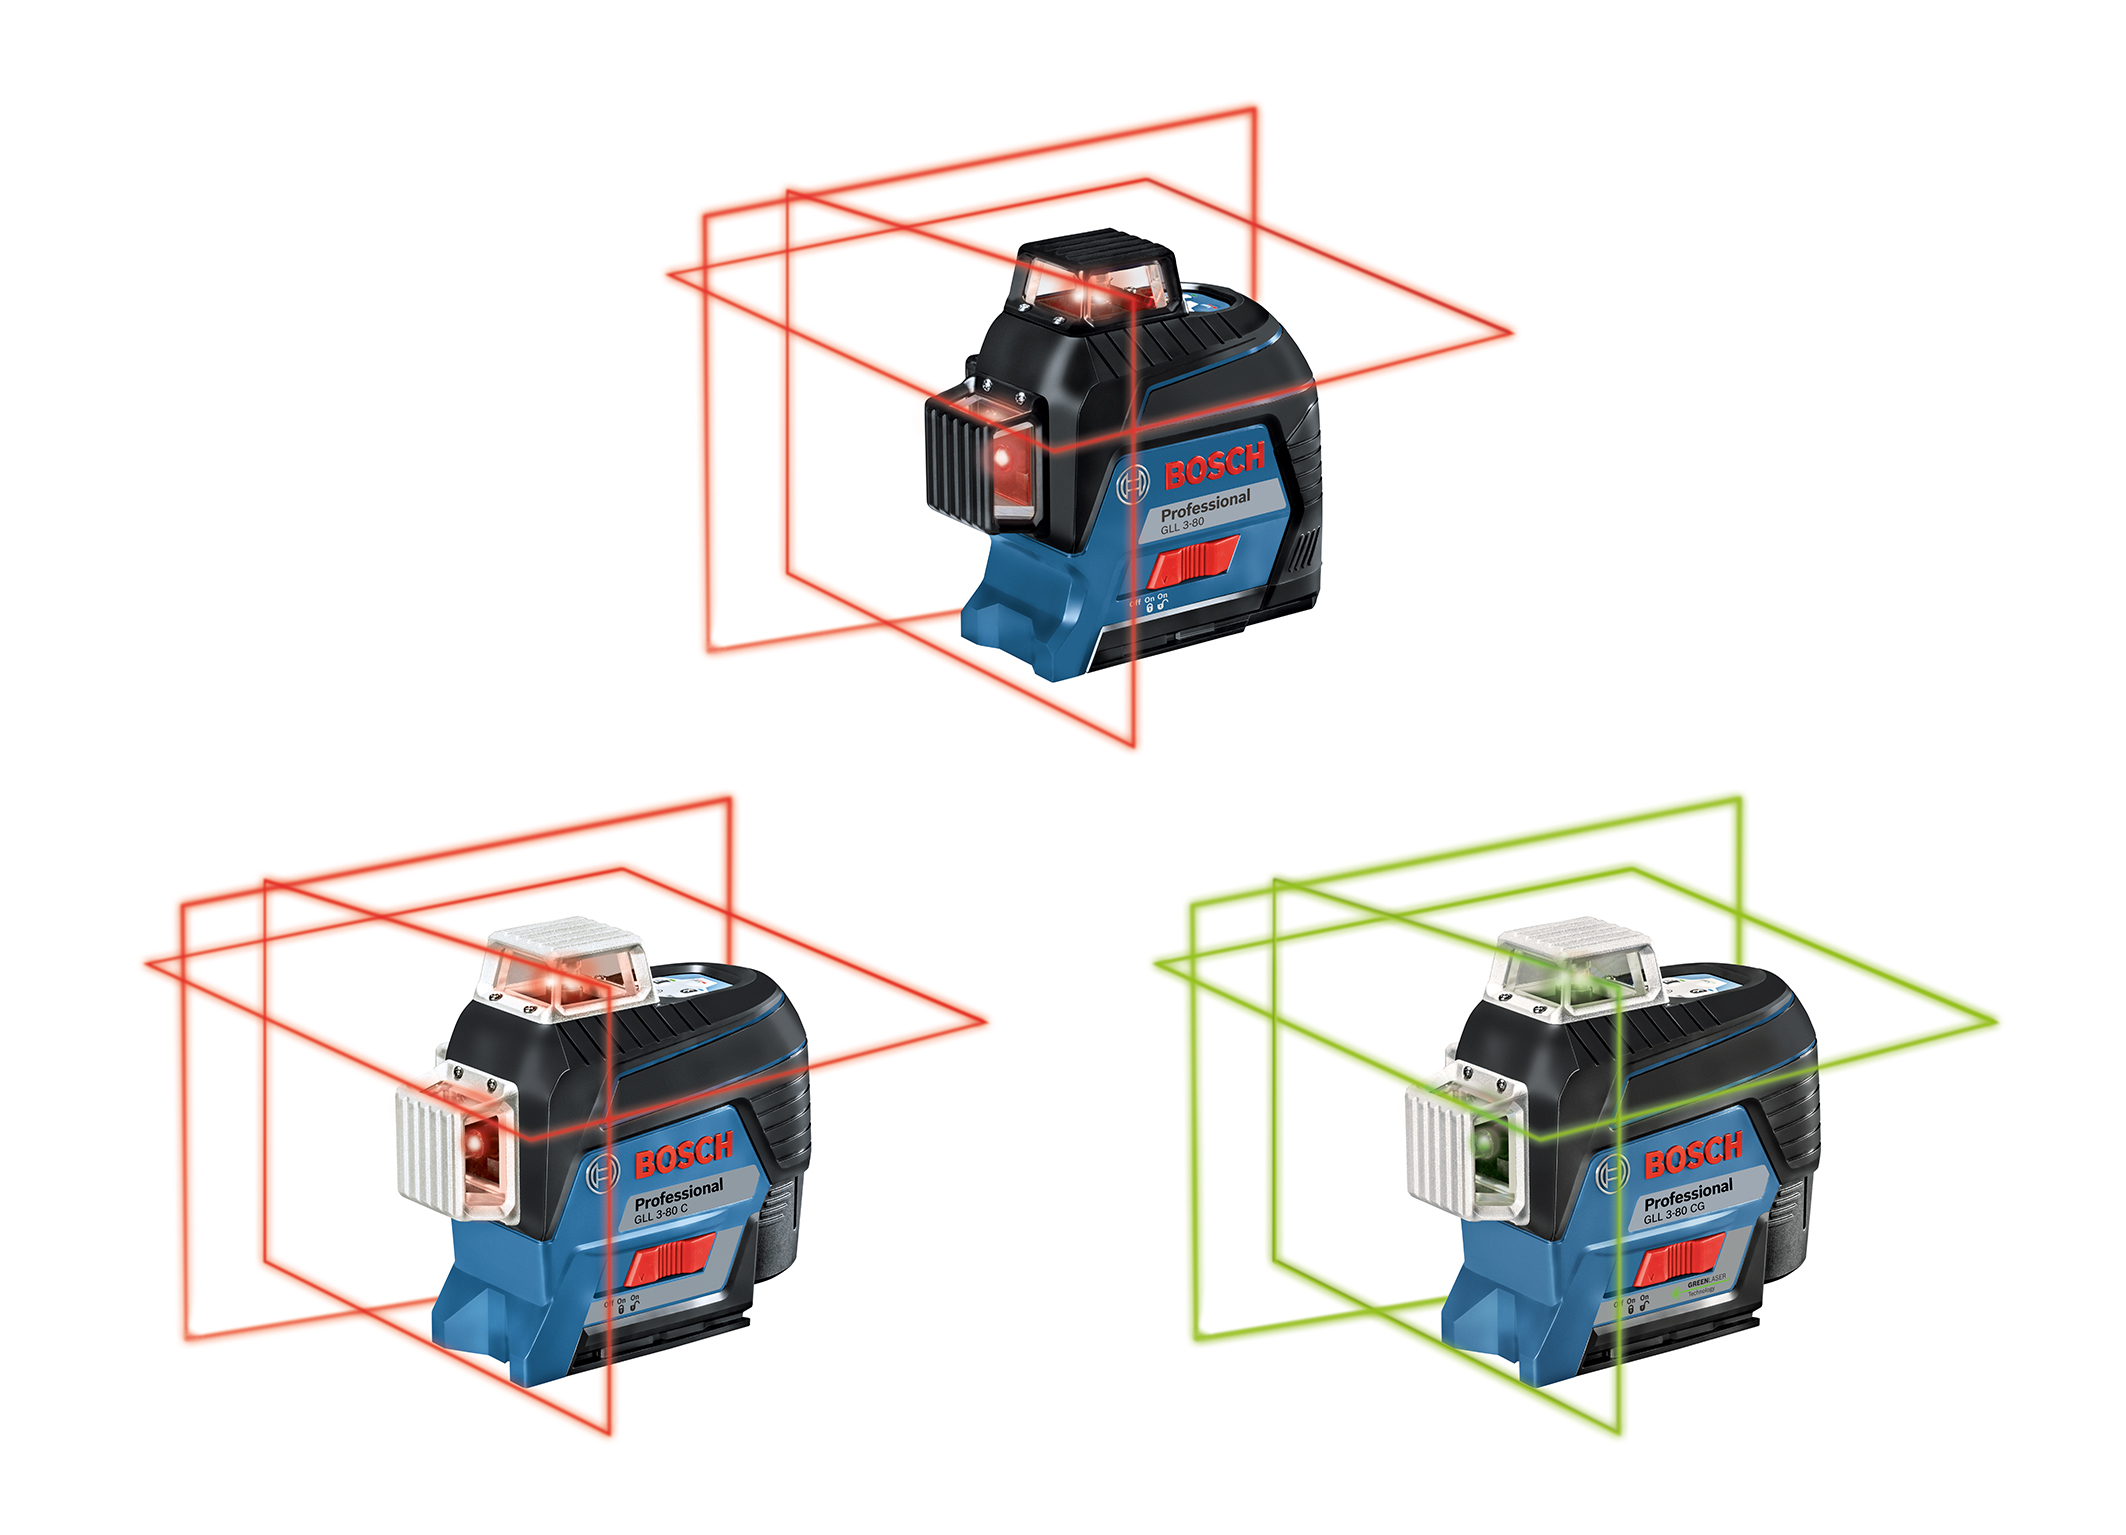 Connectivity function for precise alignment: New generation of professional Bosch line lasers